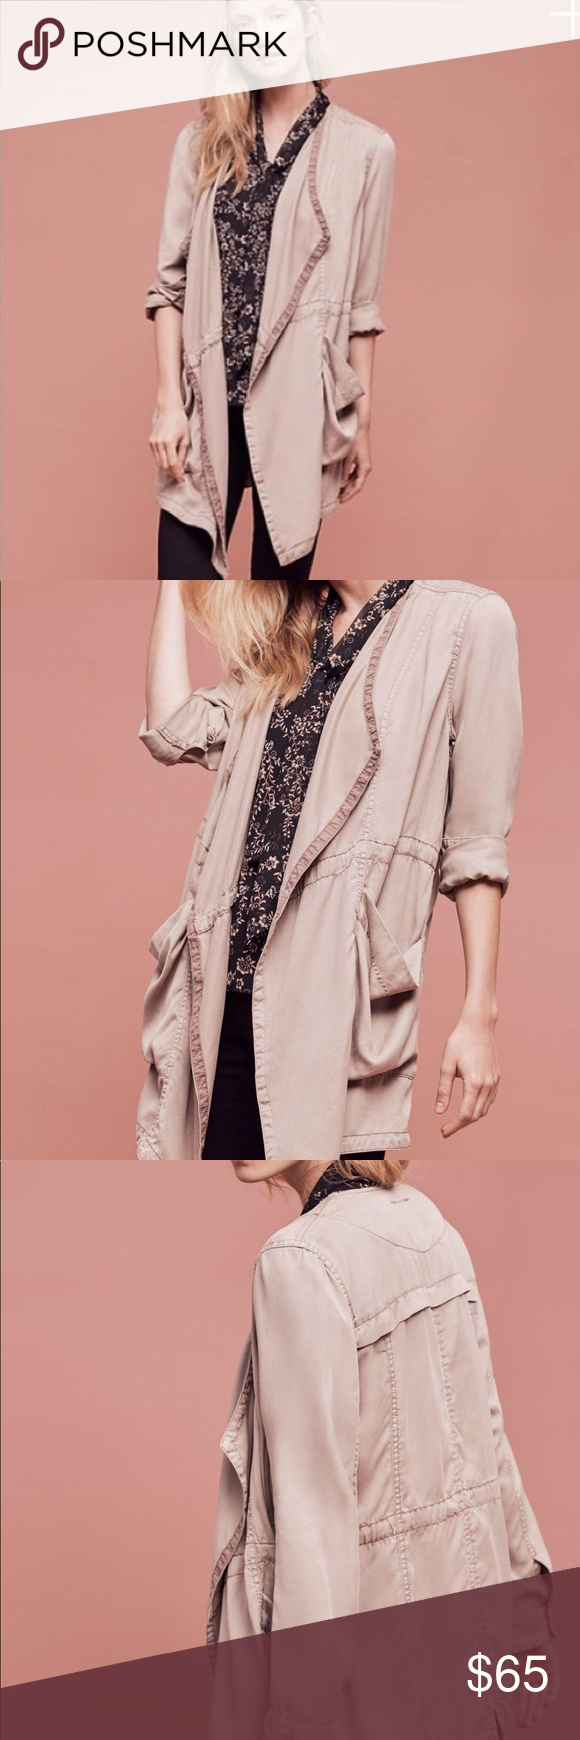 Hei Hei Morgan Trench Coat Draped trench coat from Anthropologie. Brand new conditions without tag. Anthropologie Jackets & Coats Trench Coats